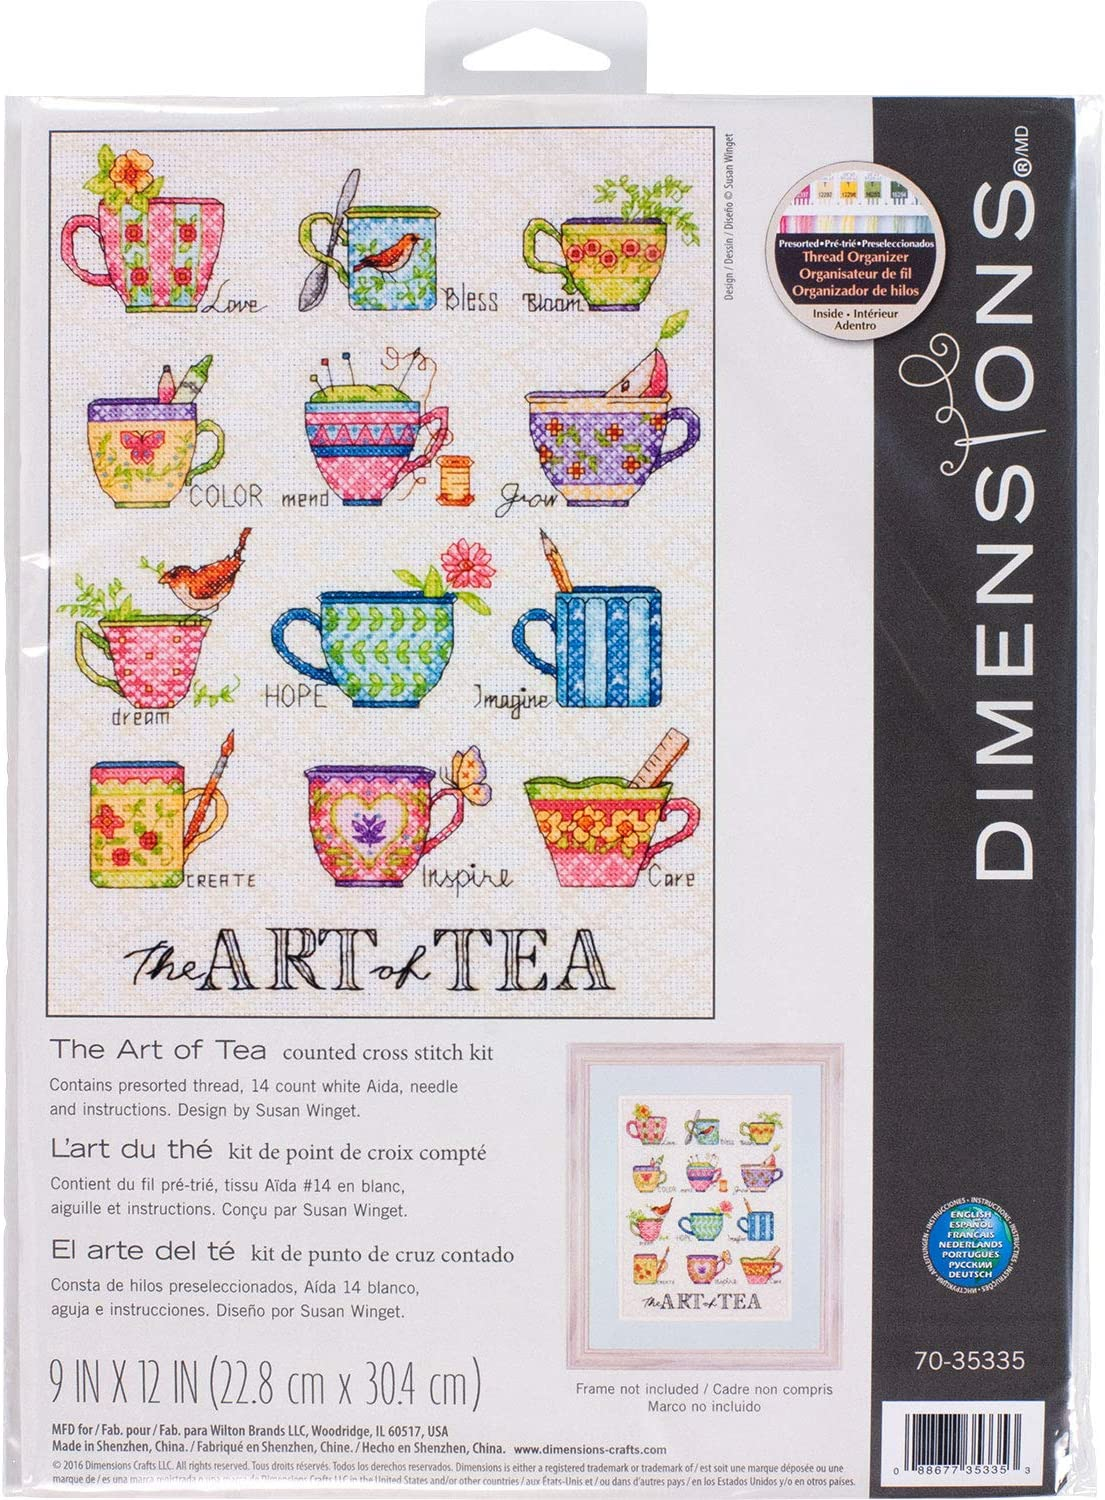 DIMENSIONS Needlecrafts The Art of Tea, Counted Cross Stitch Kit